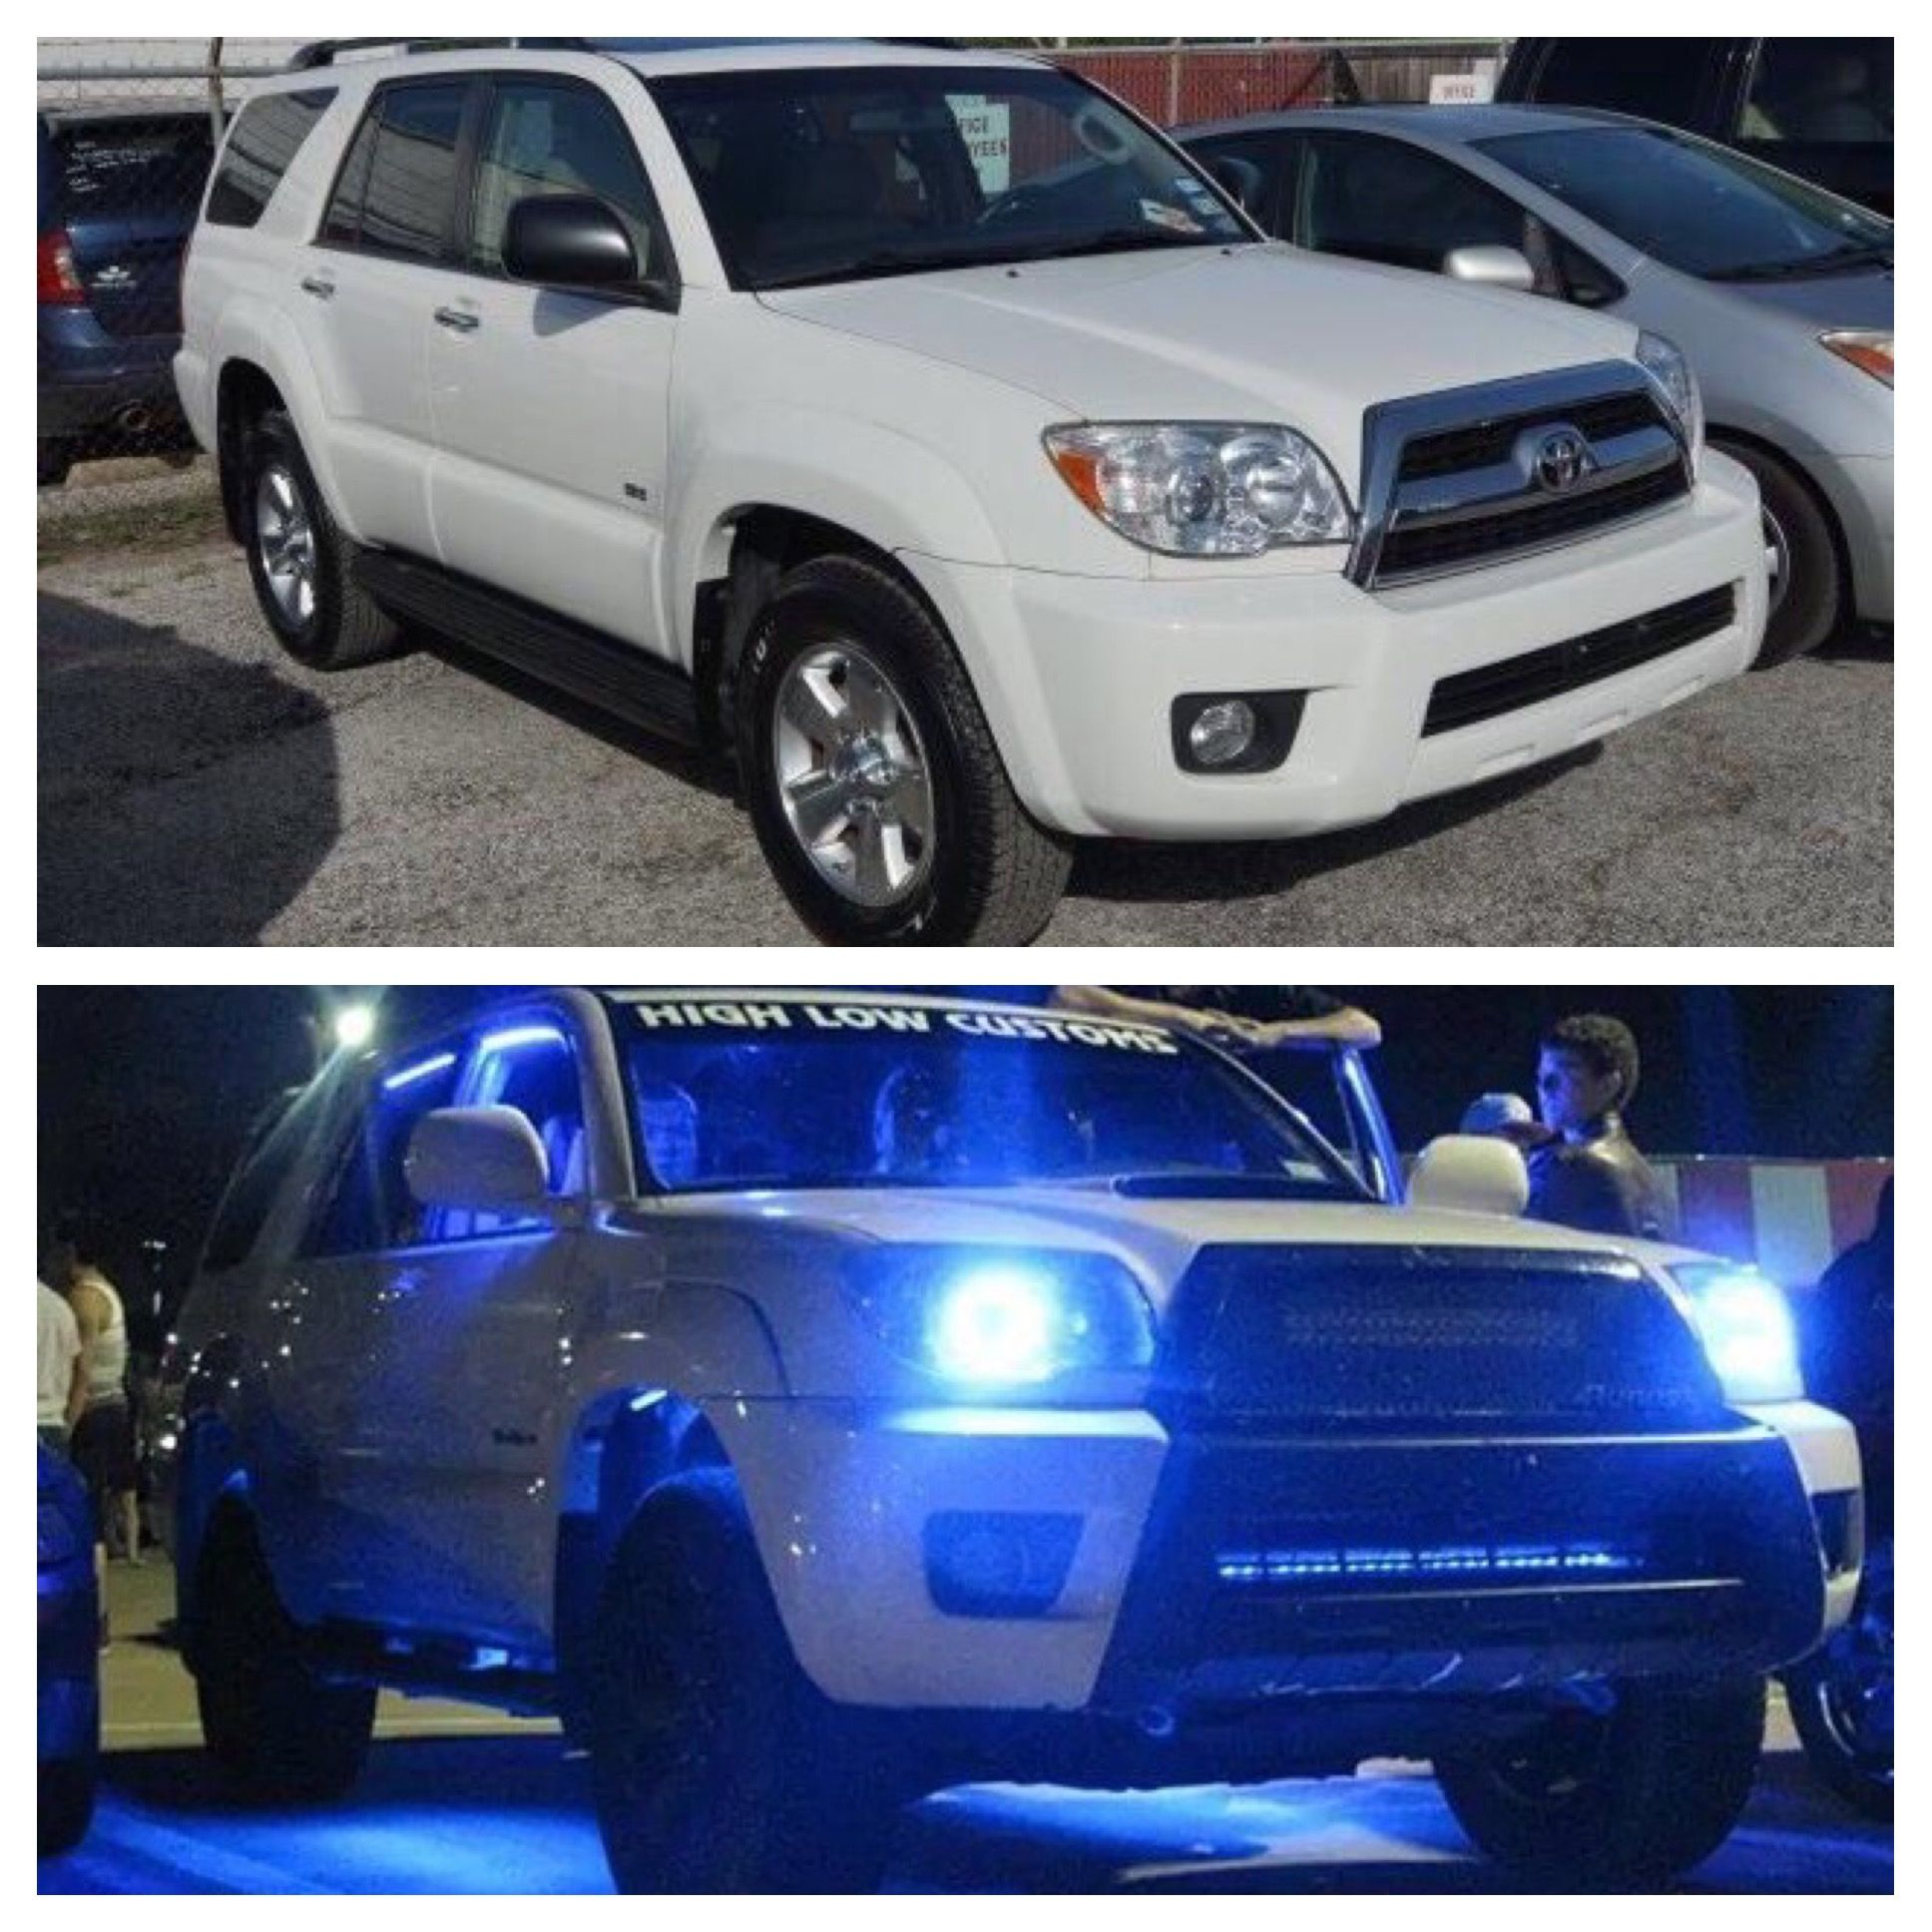 4runner with blue underglow wheel well grill lights custom mesh 4runner with blue underglow wheel well grill lights custom mesh grill 20 light bar lifted system 18 sub dc audio level 4 sport edition hood scoop fast mozeypictures Choice Image